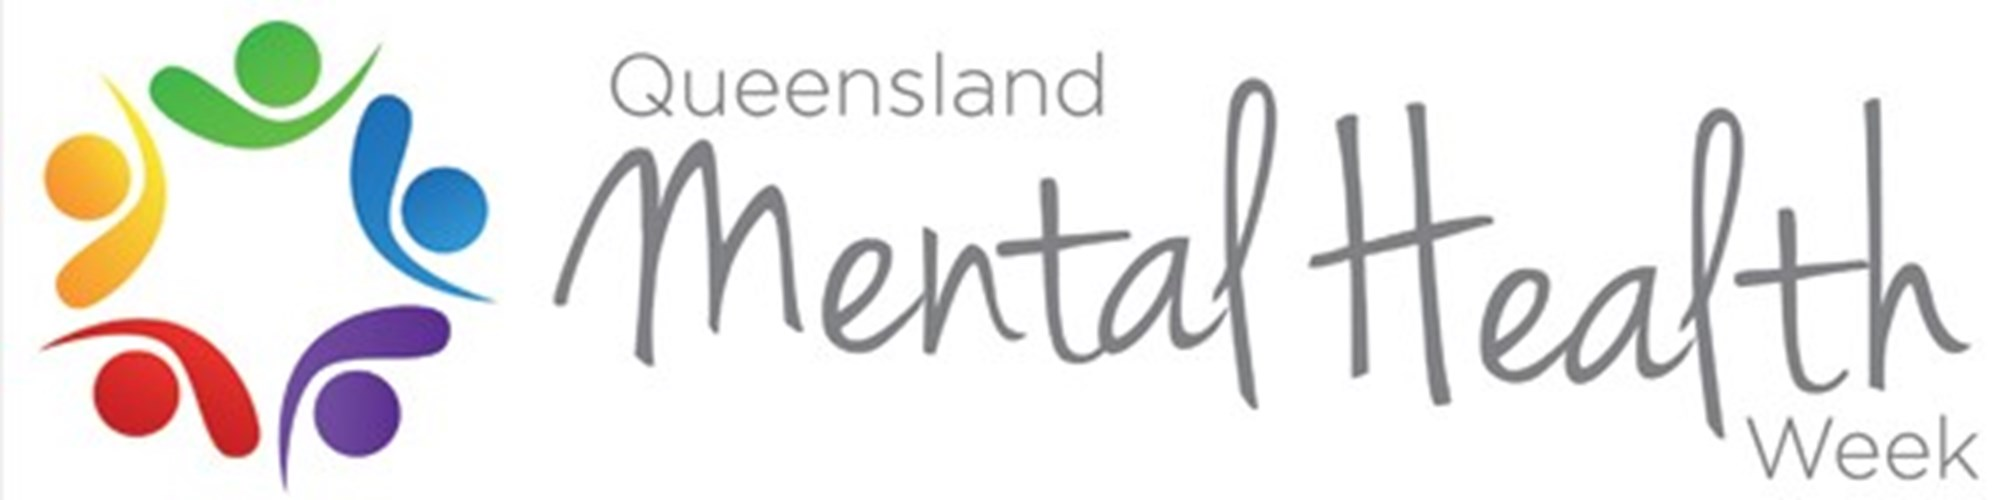 get-involved-in-queensland-mental-health-week-2018.jpg